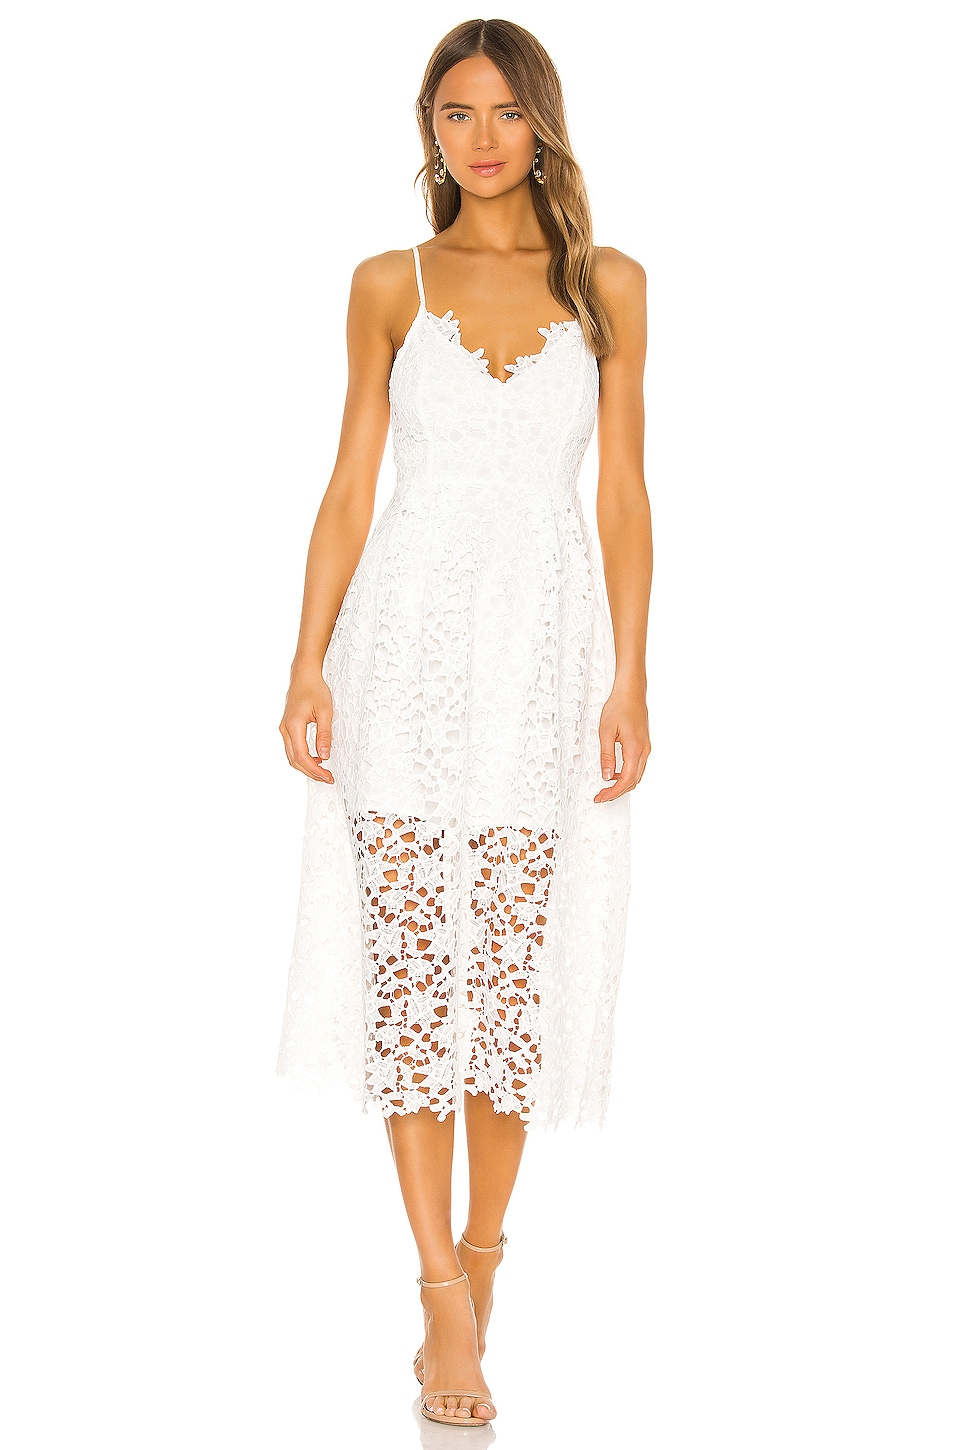 Lace A Line Midi Dress                     ASTR the Label 6